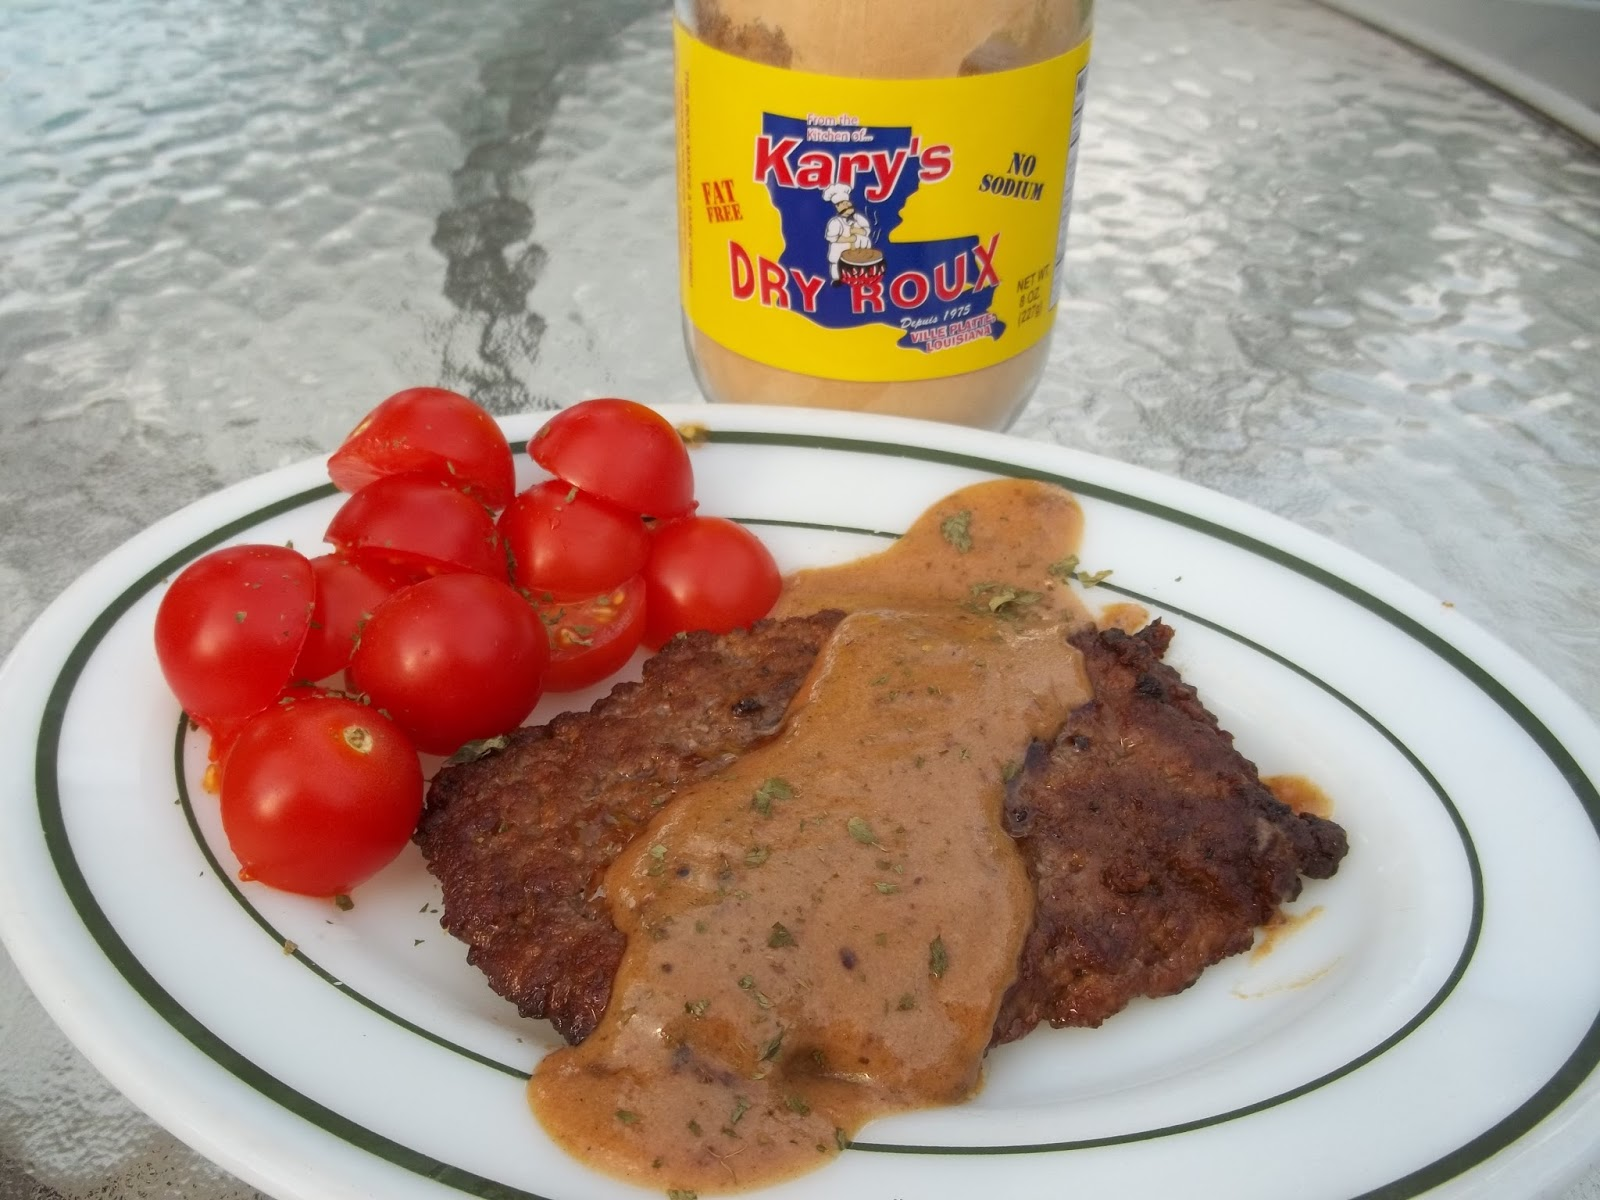 Country Fried Steak with Kary's Dry Roux Milk Gravy..